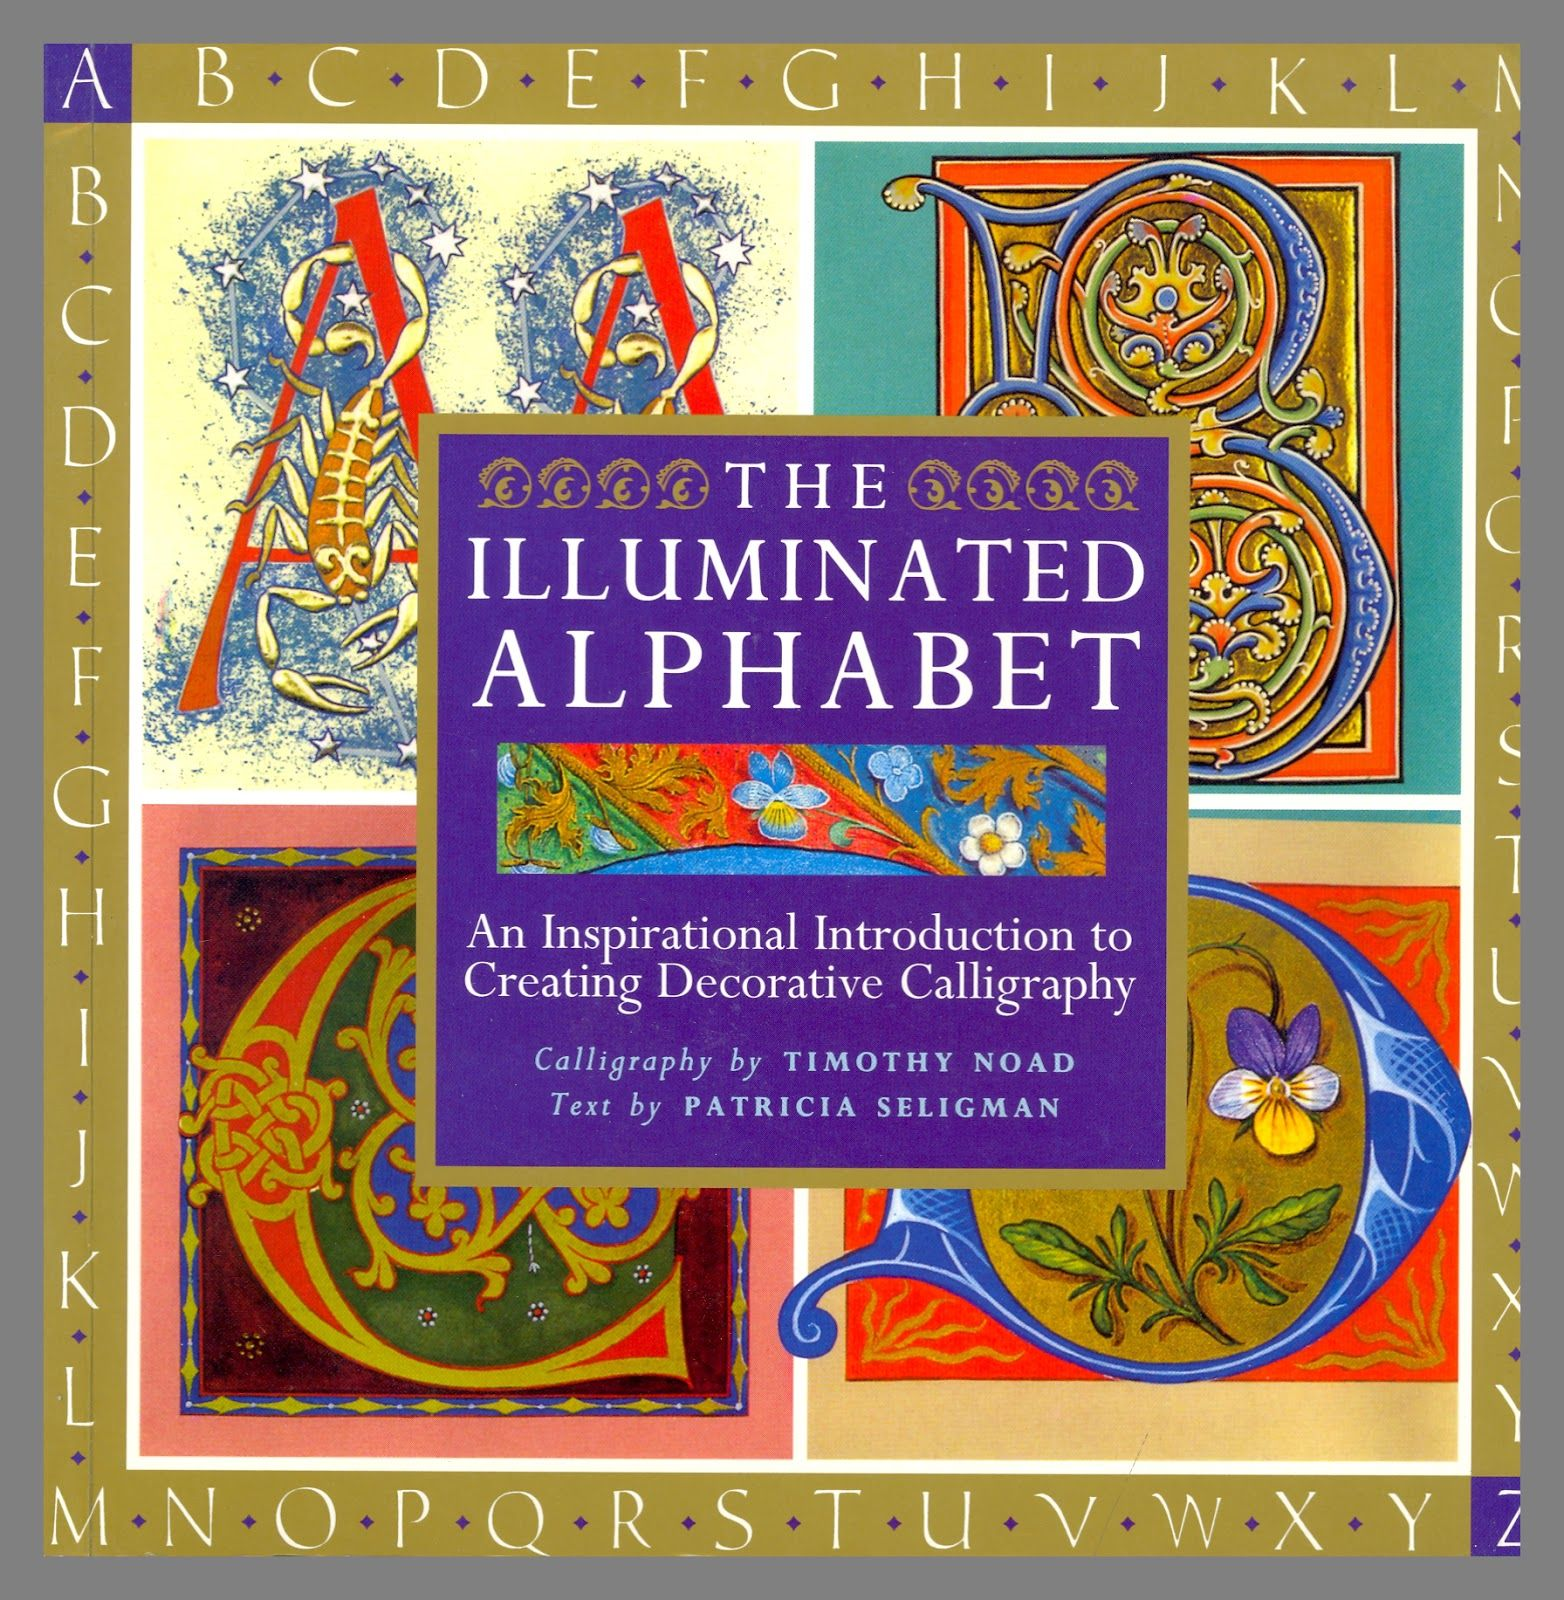 Center for Book Arts: Wednesday's Exhibitions and Collections: The Illuminated Alphabet